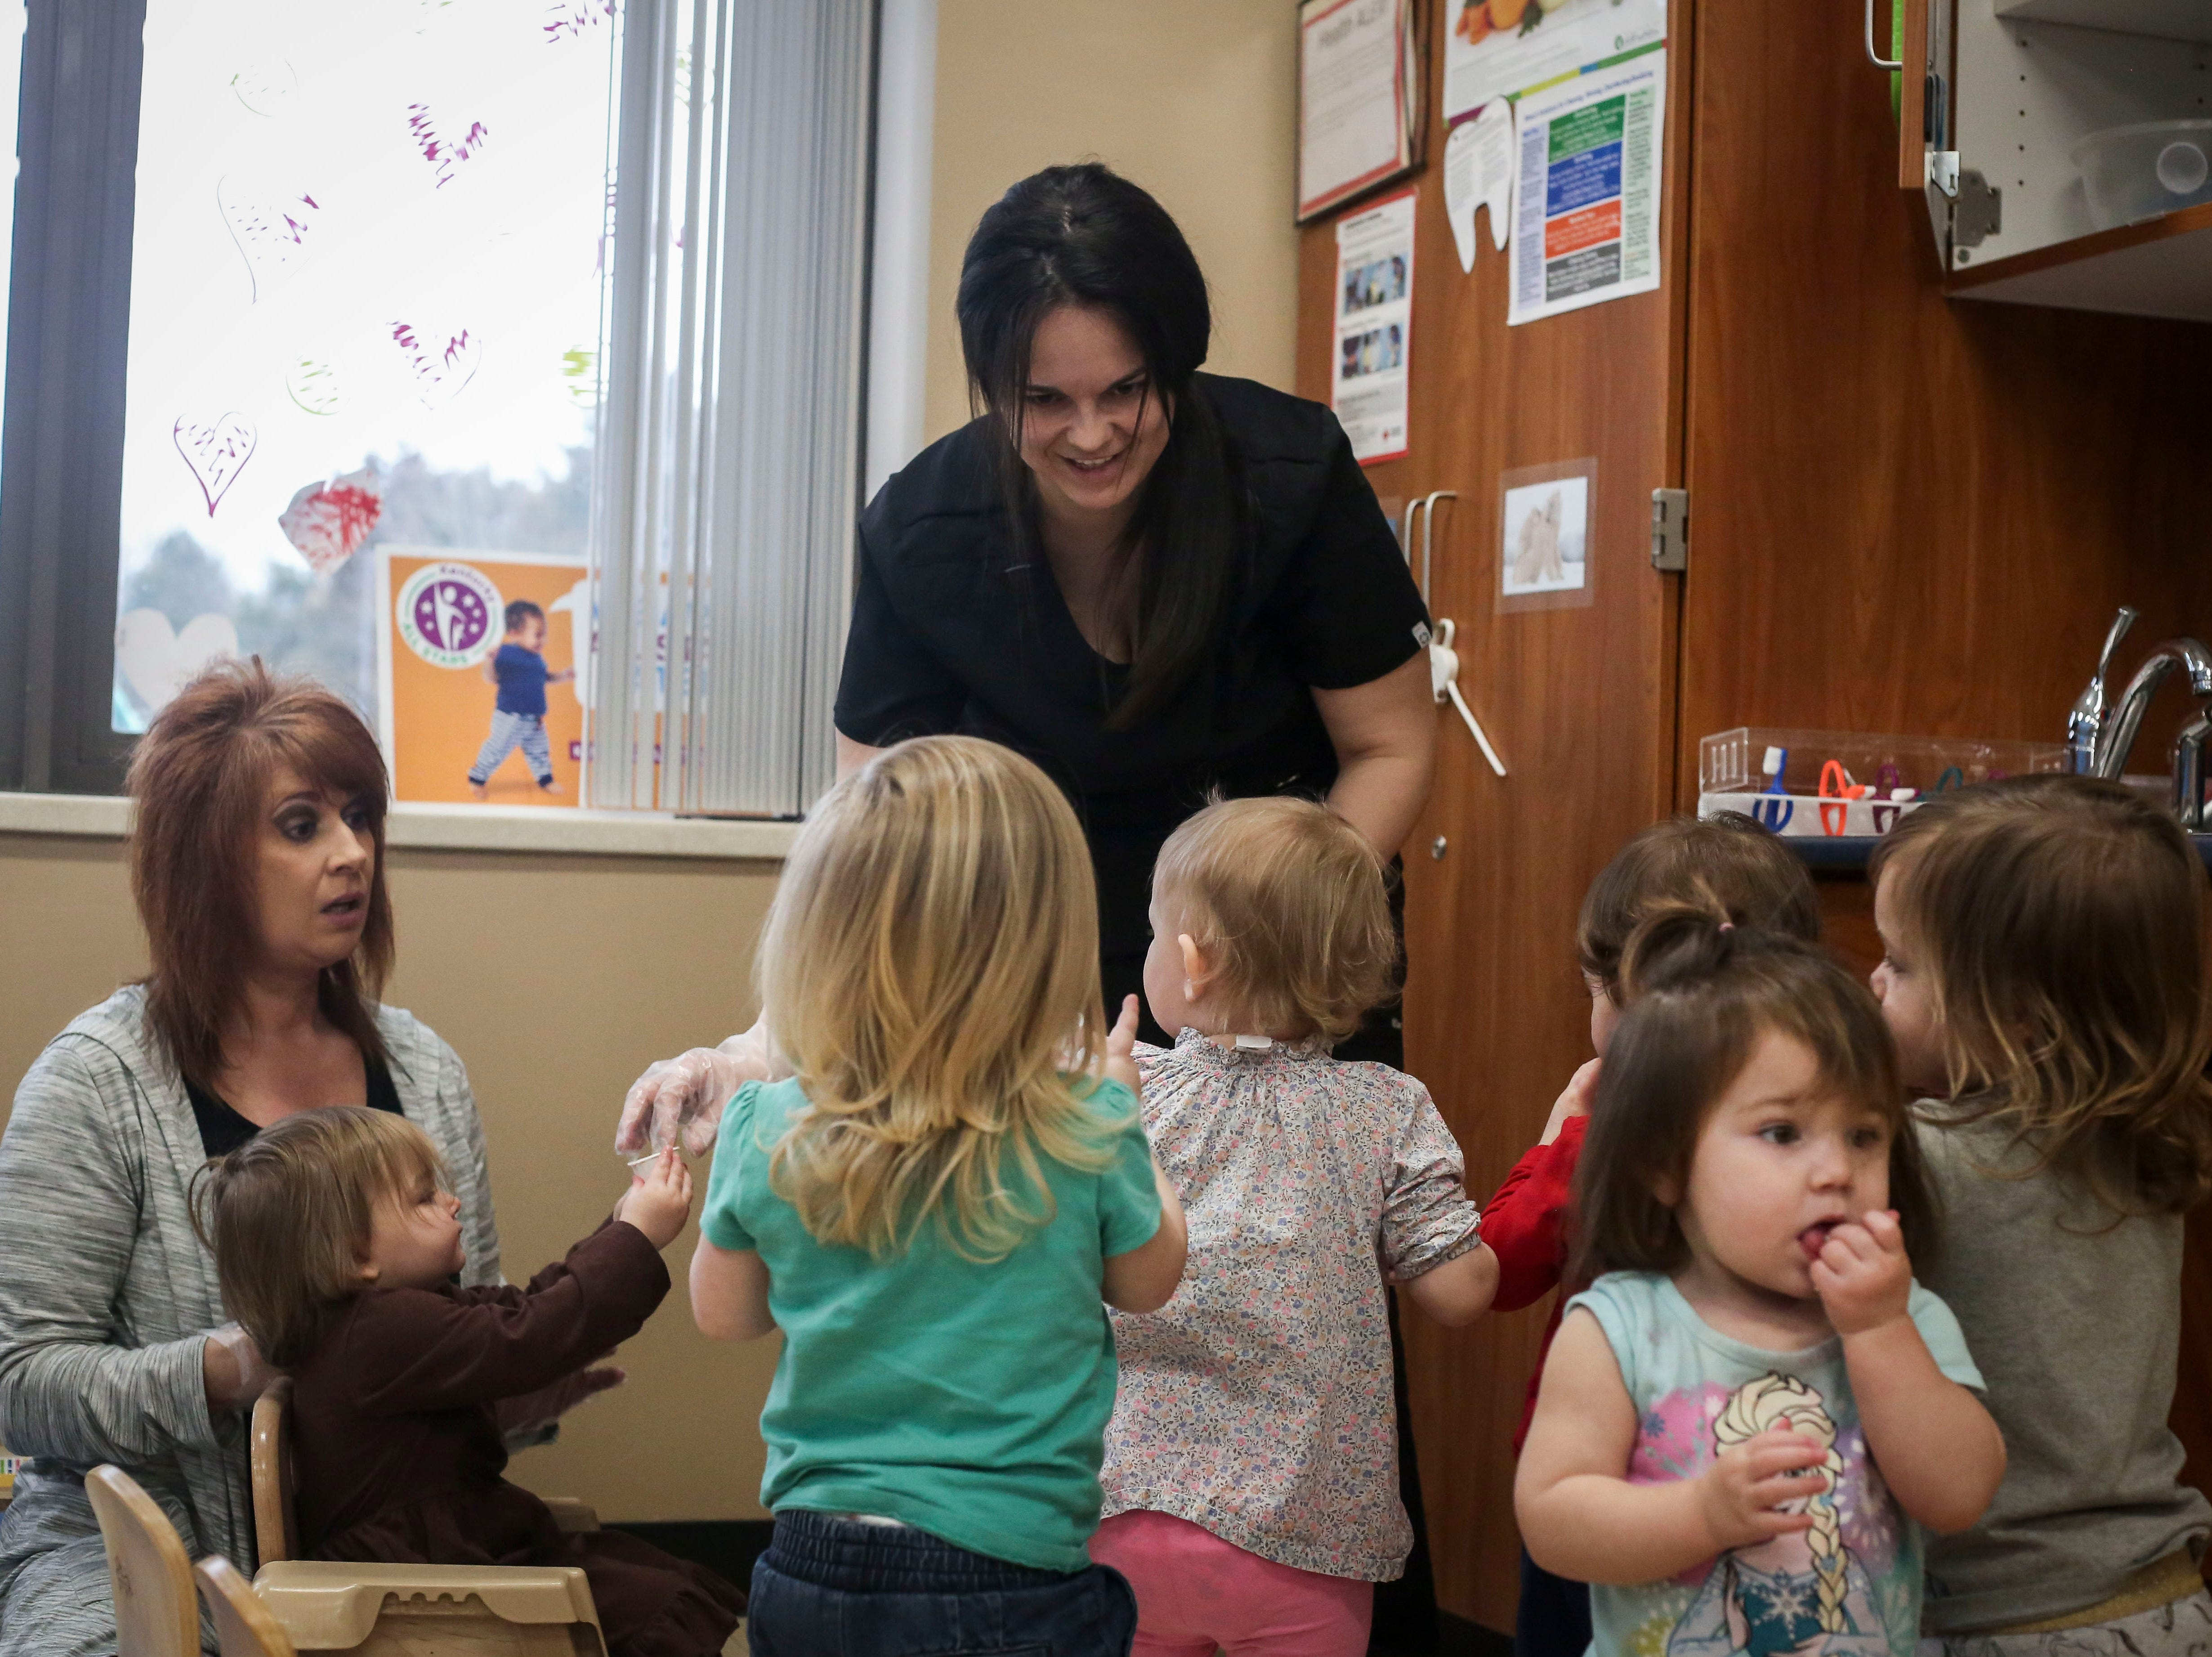 Stephanie Wright, primary caregiver, helps children brush their teeth during the Early Head Start program at Brooks Elementary School in Brooks, Ky. on Feb. 5, 2019.